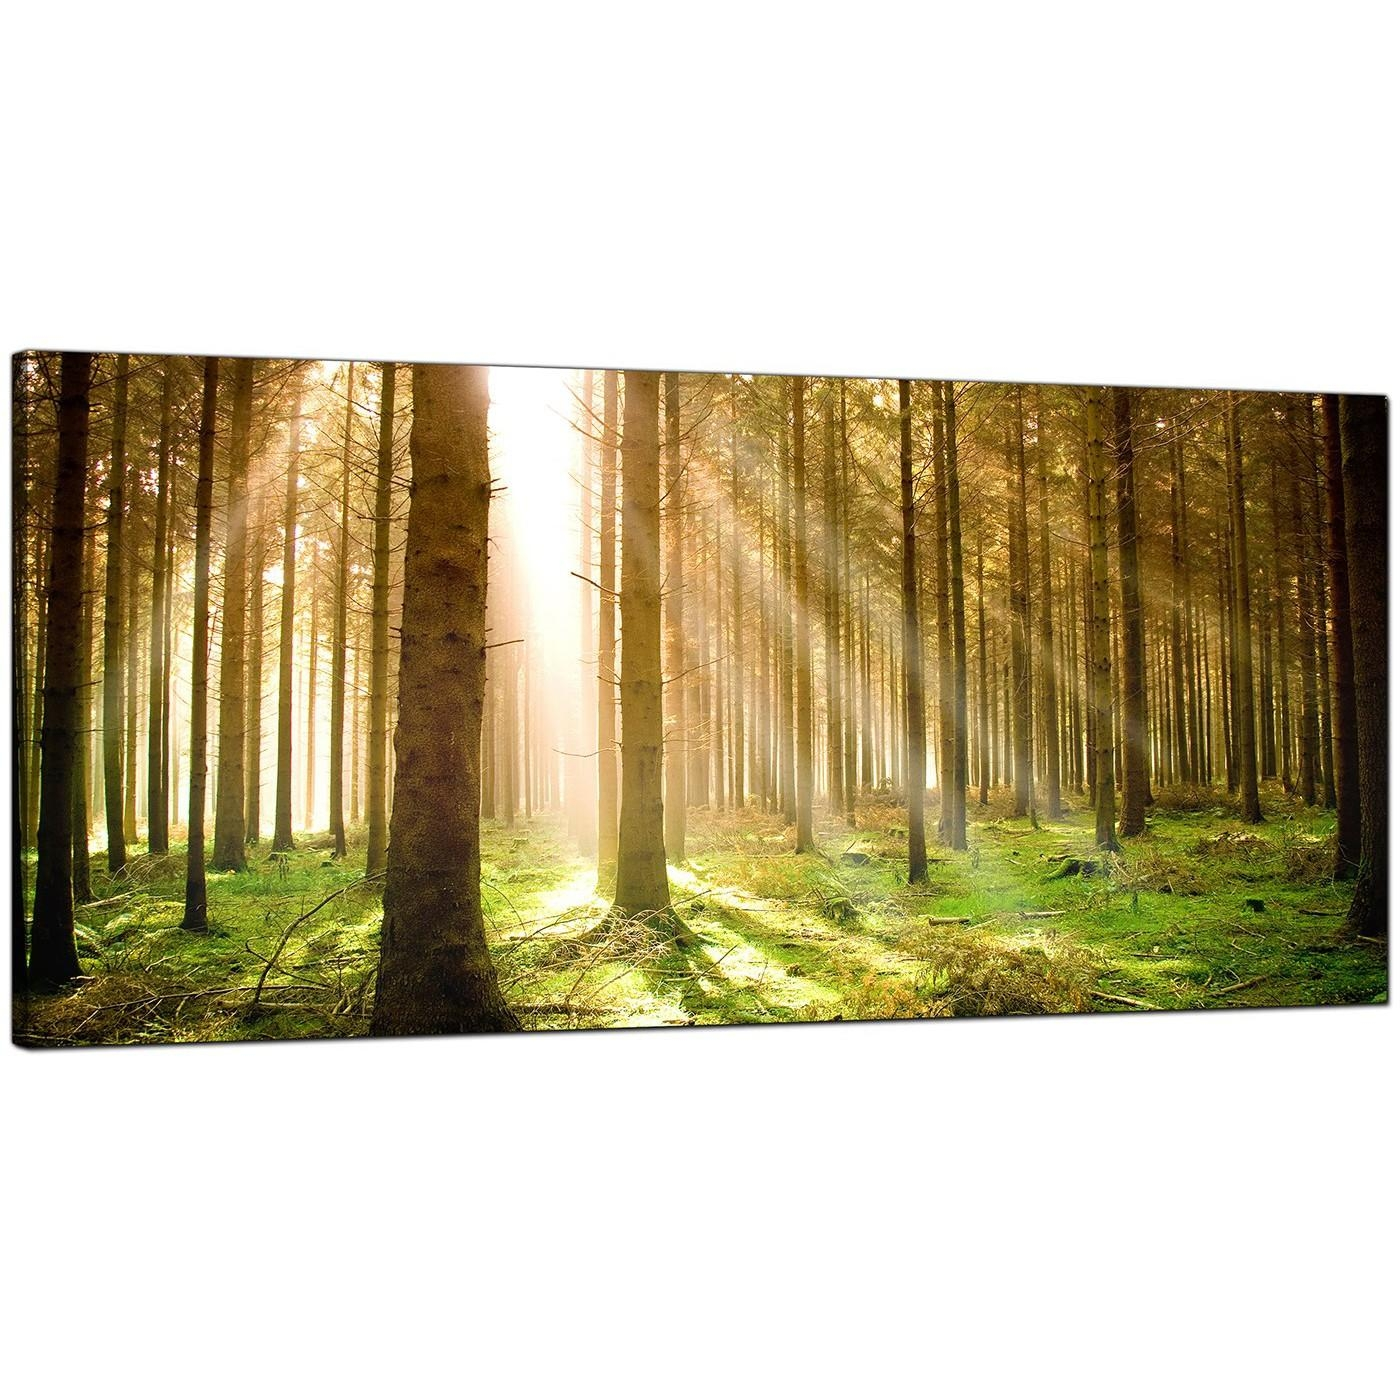 Modern Canvas Prints Of Forest Trees For Your Dining Room In Inexpensive Canvas Wall Art (Image 9 of 20)